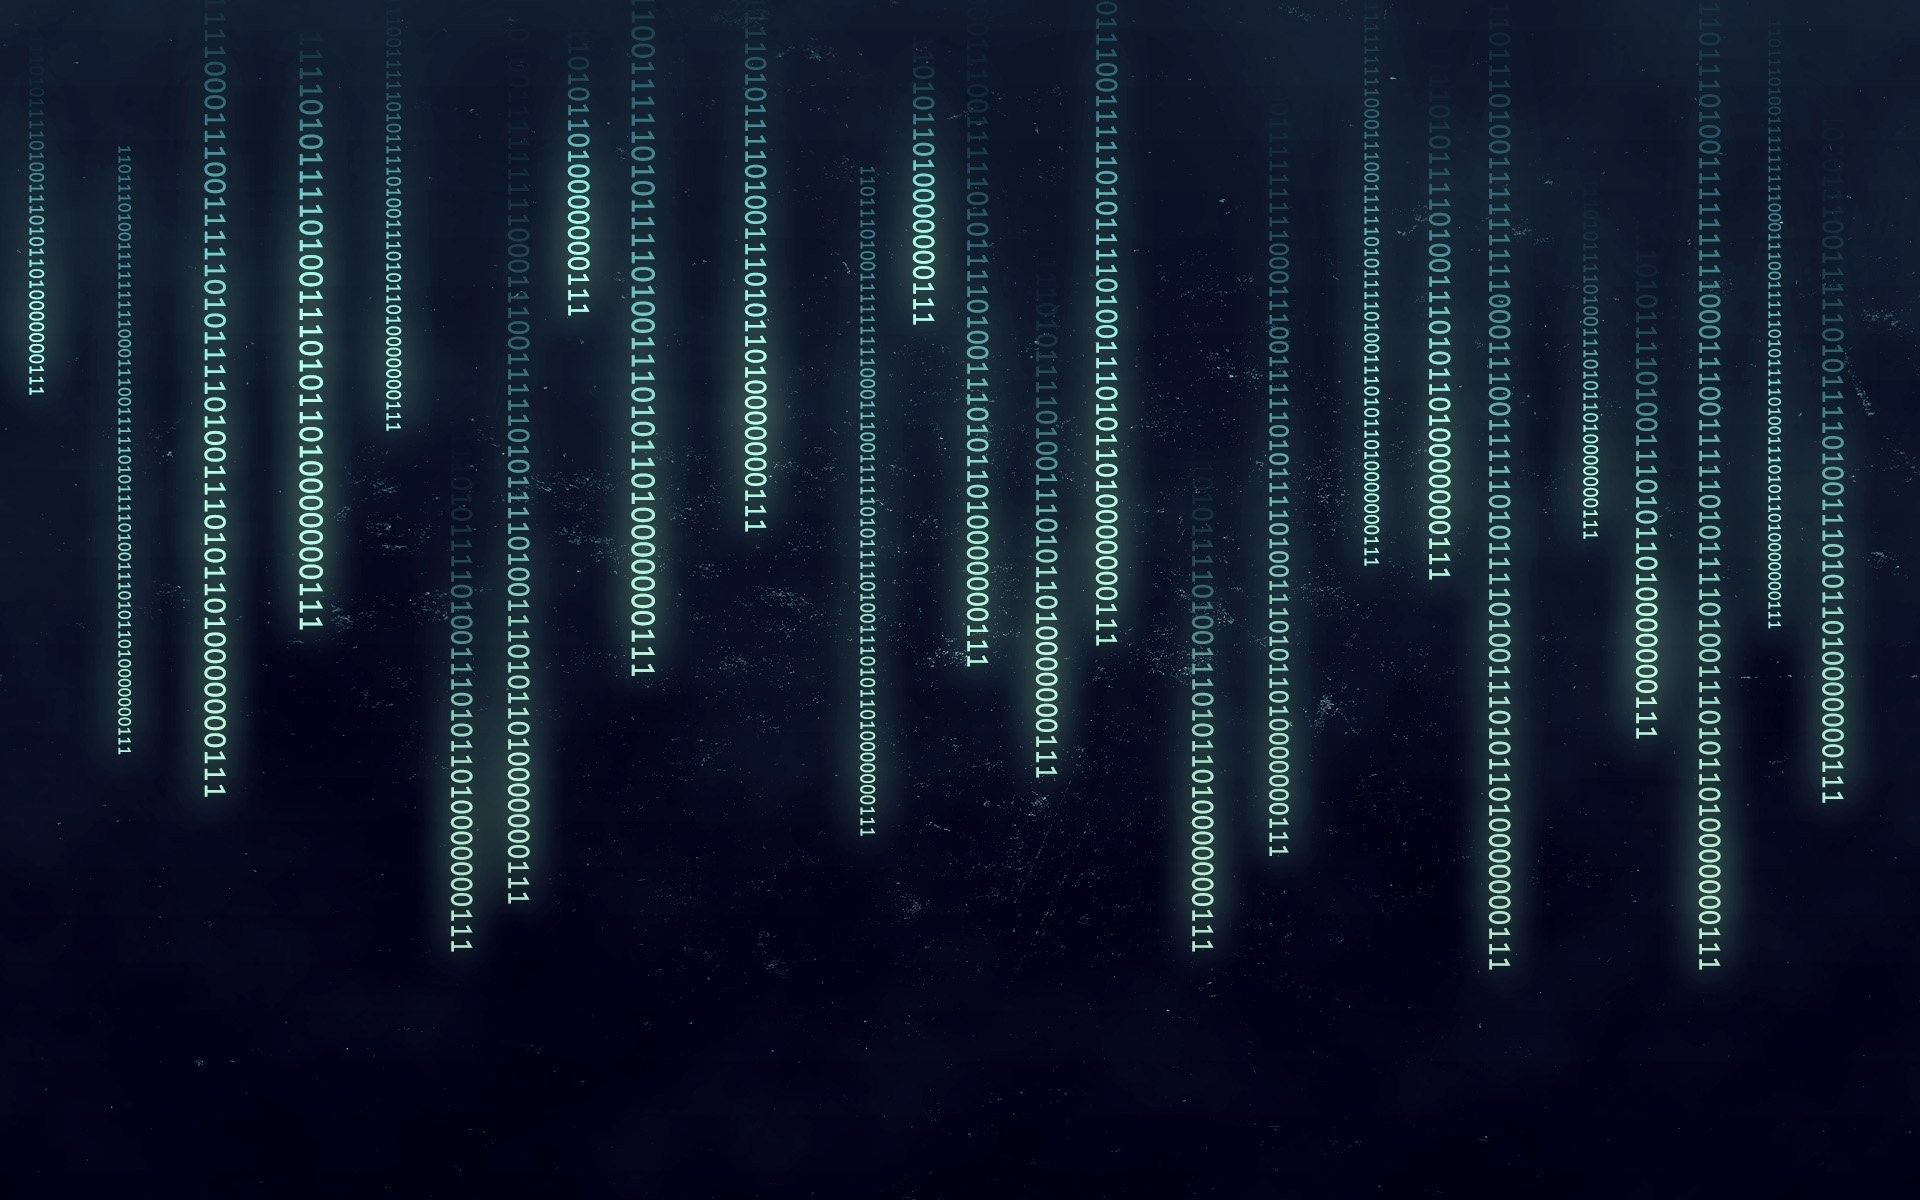 Cool Computer Science Backgrounds